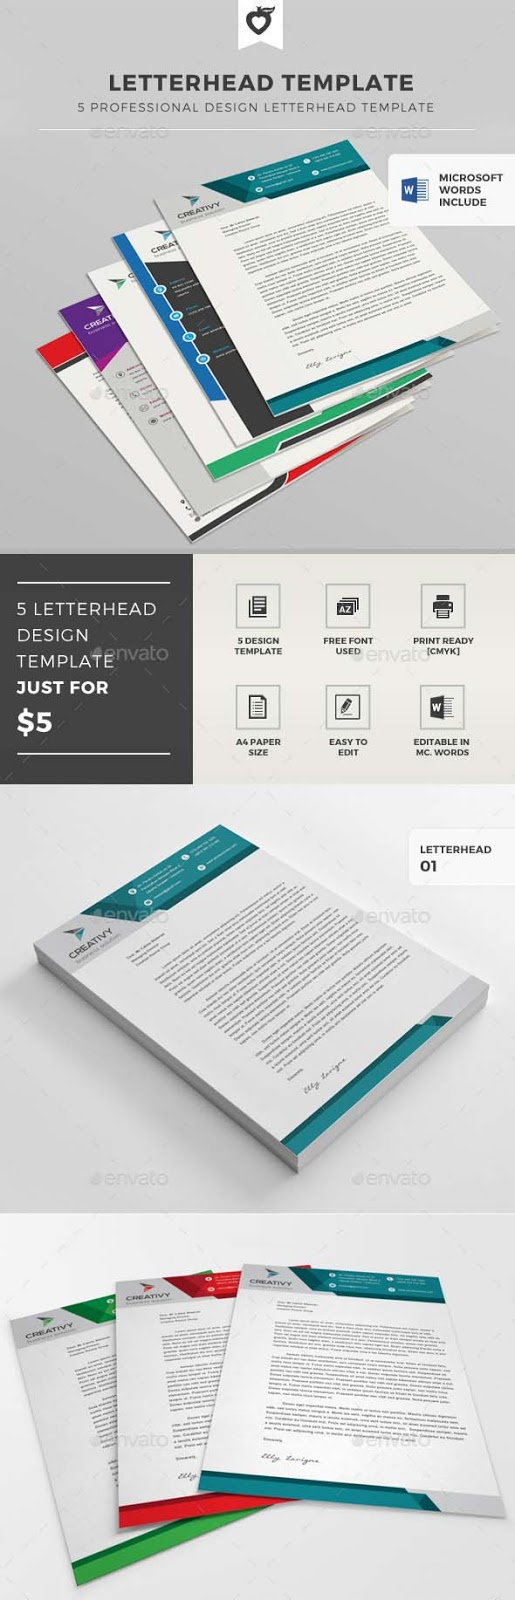 7 Letterhead Templates In 1  Letterhead Template Word Free